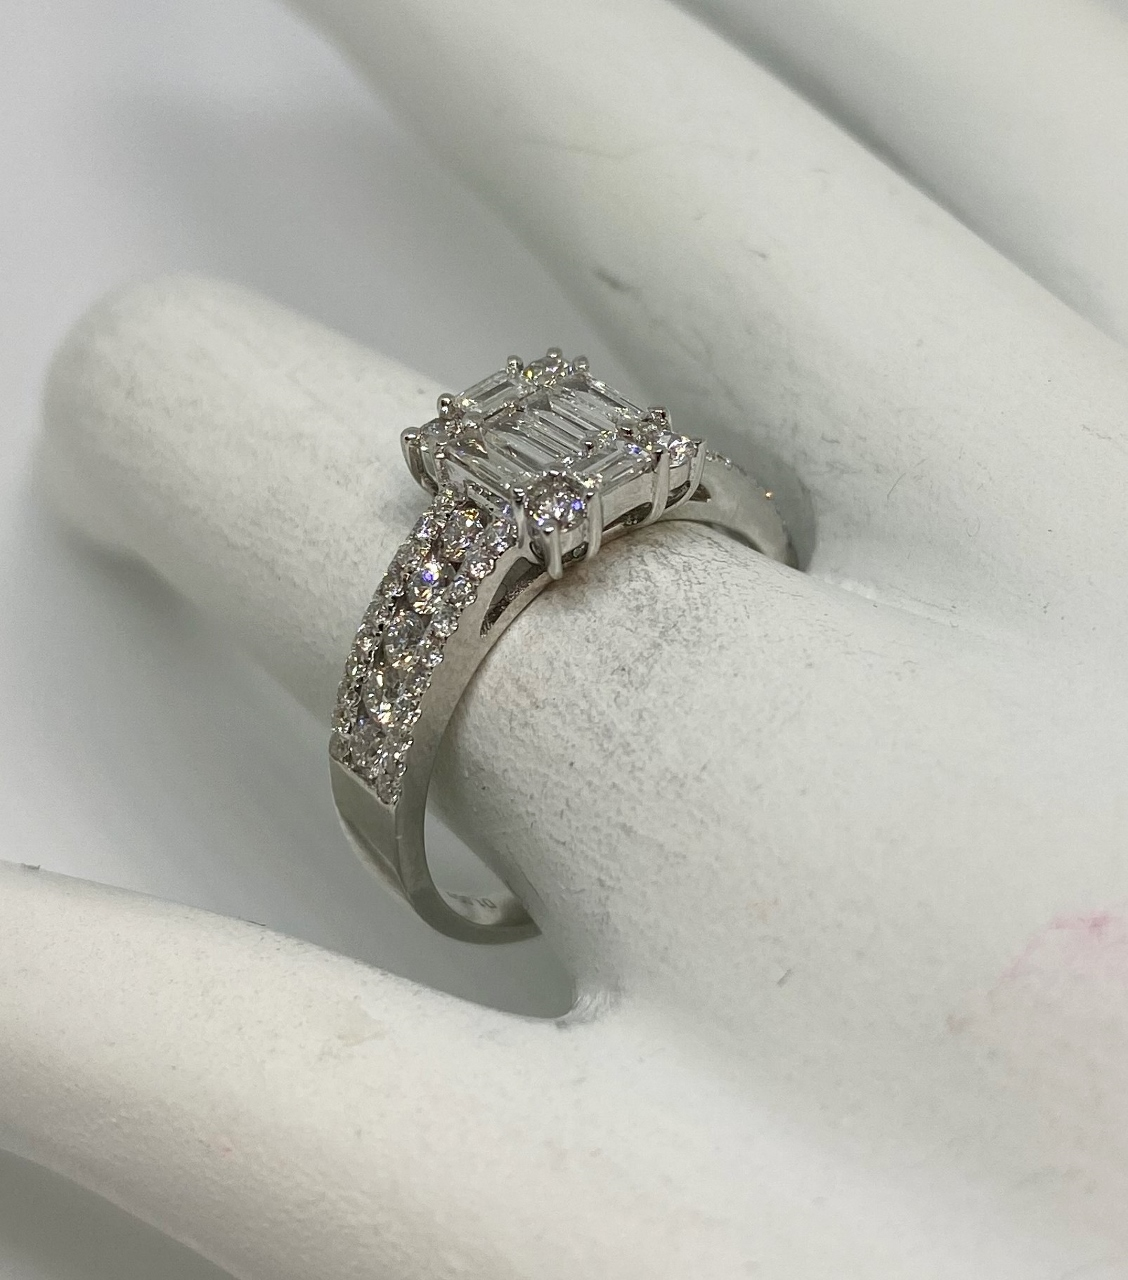 1 Carat Total Weight Diamond Ring